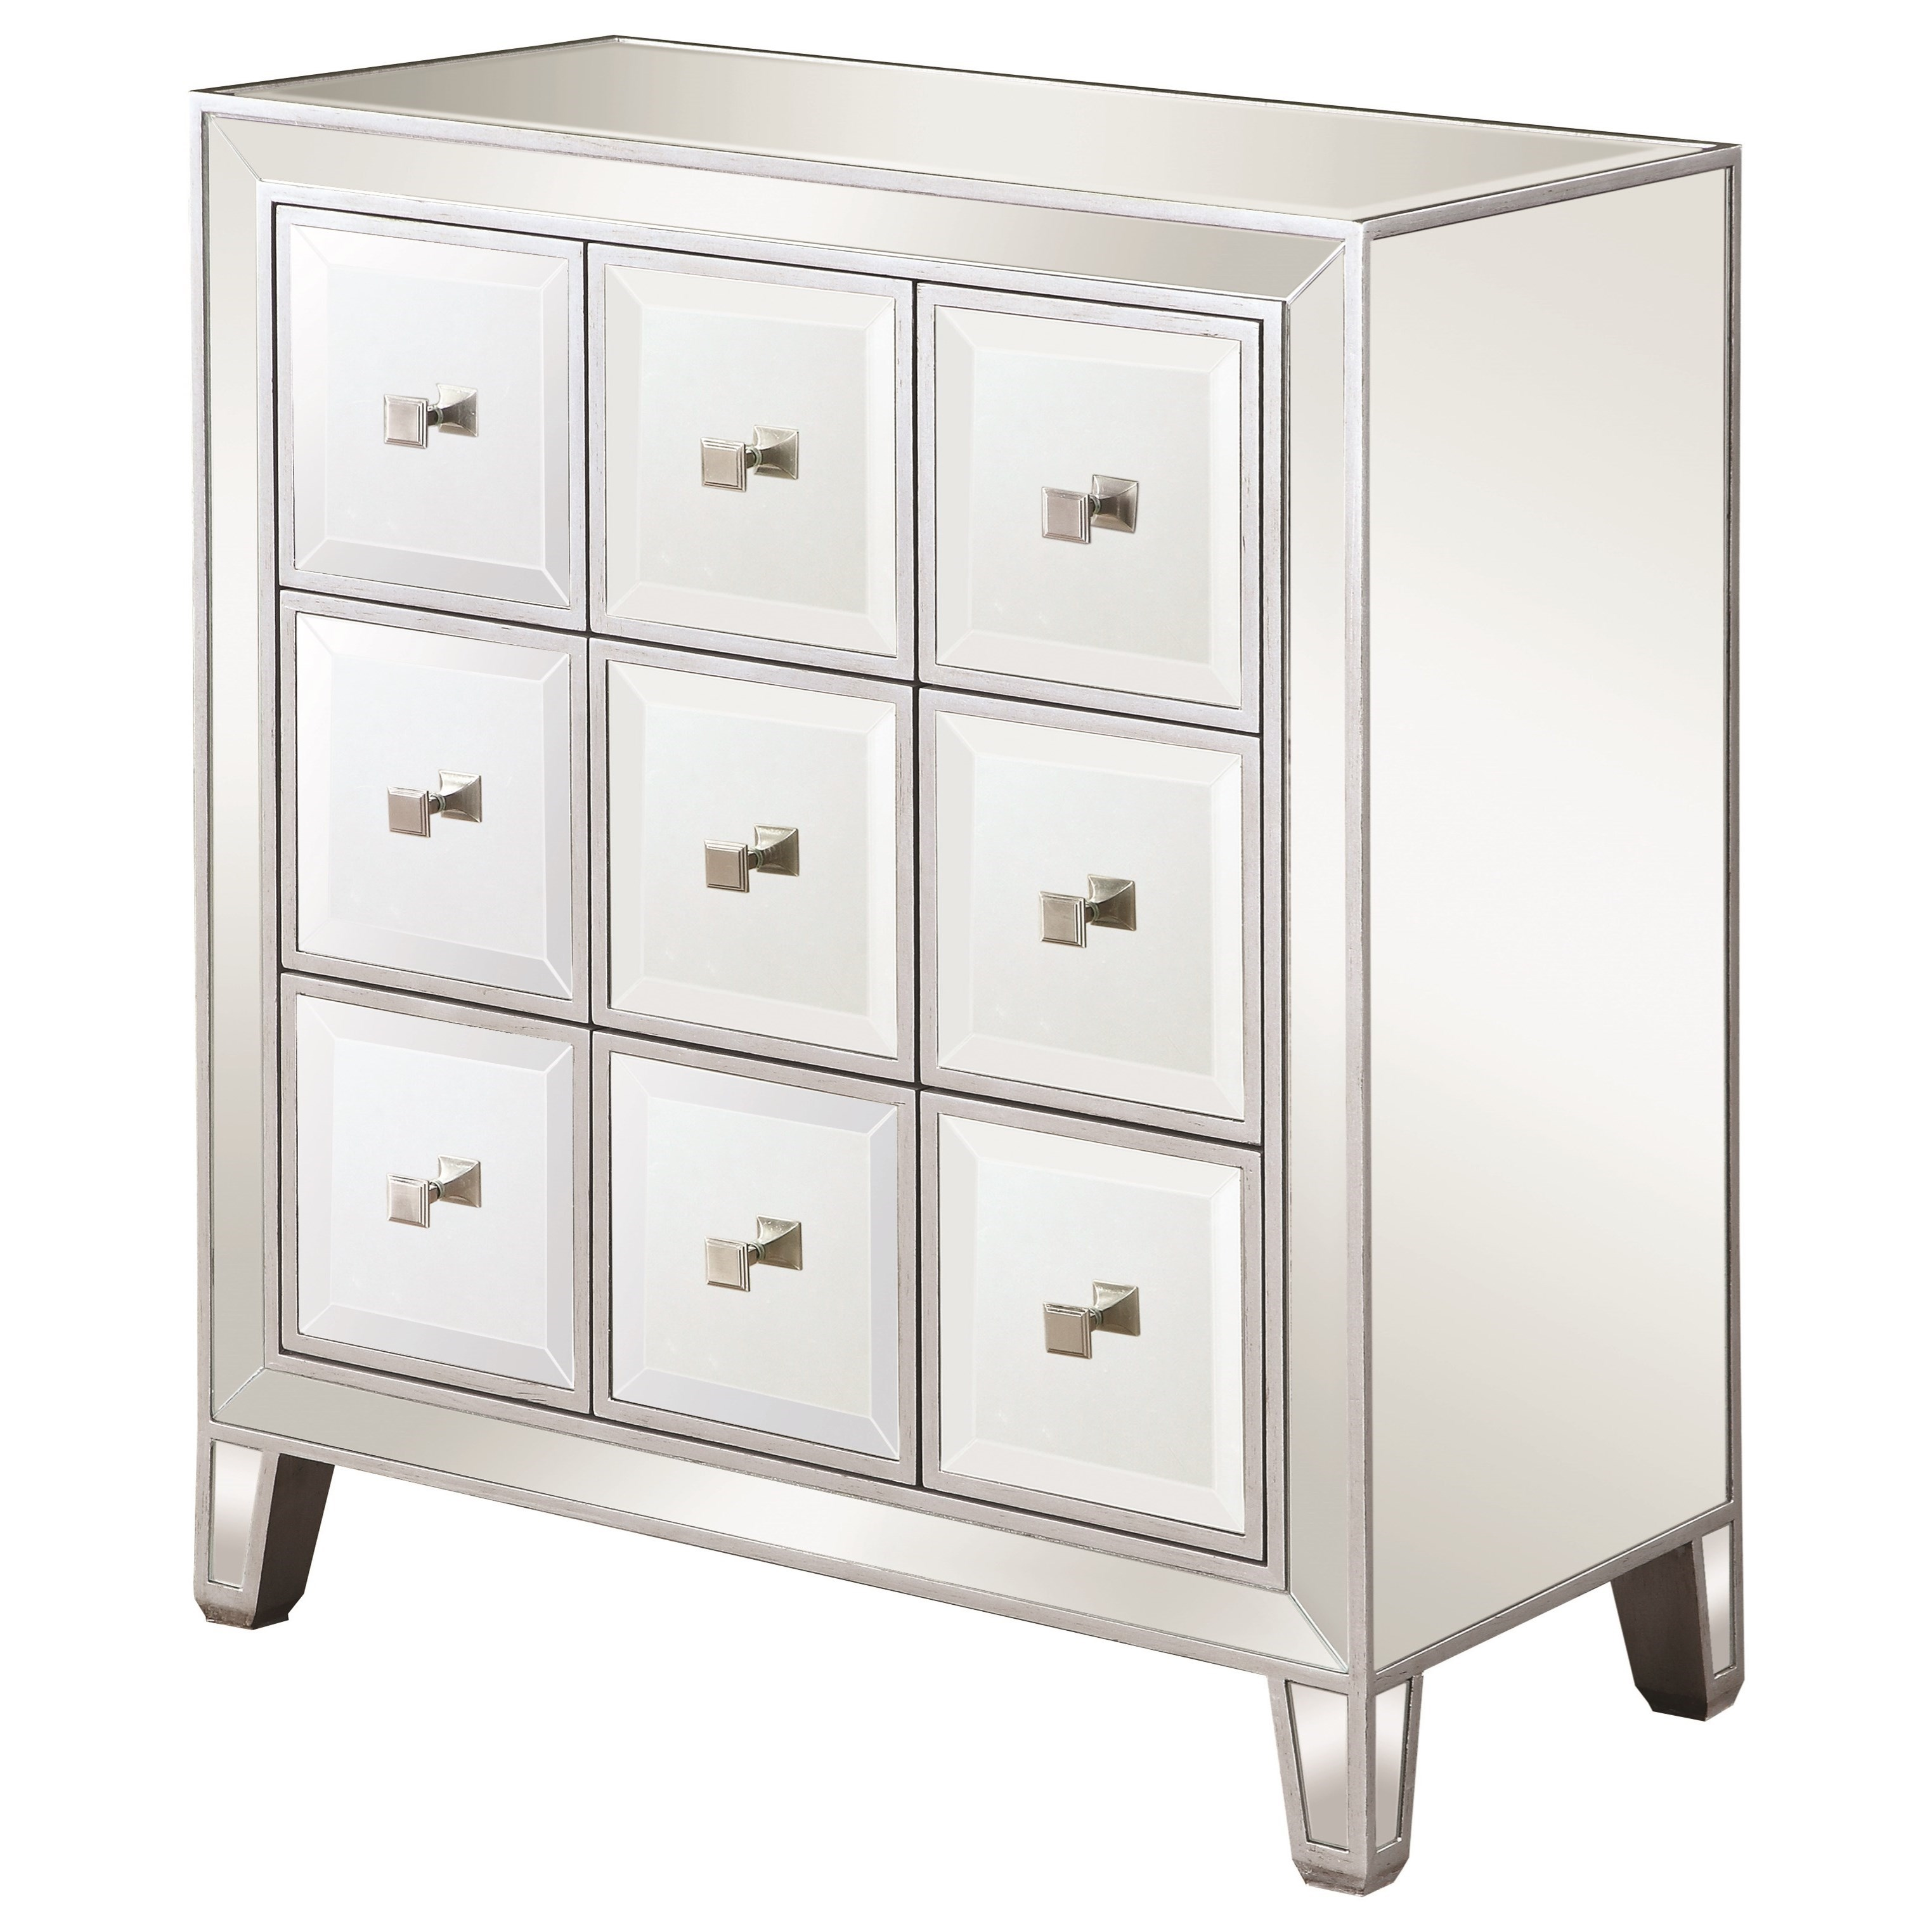 Scott Living Accents Accent Cabinet - Item Number: 950745